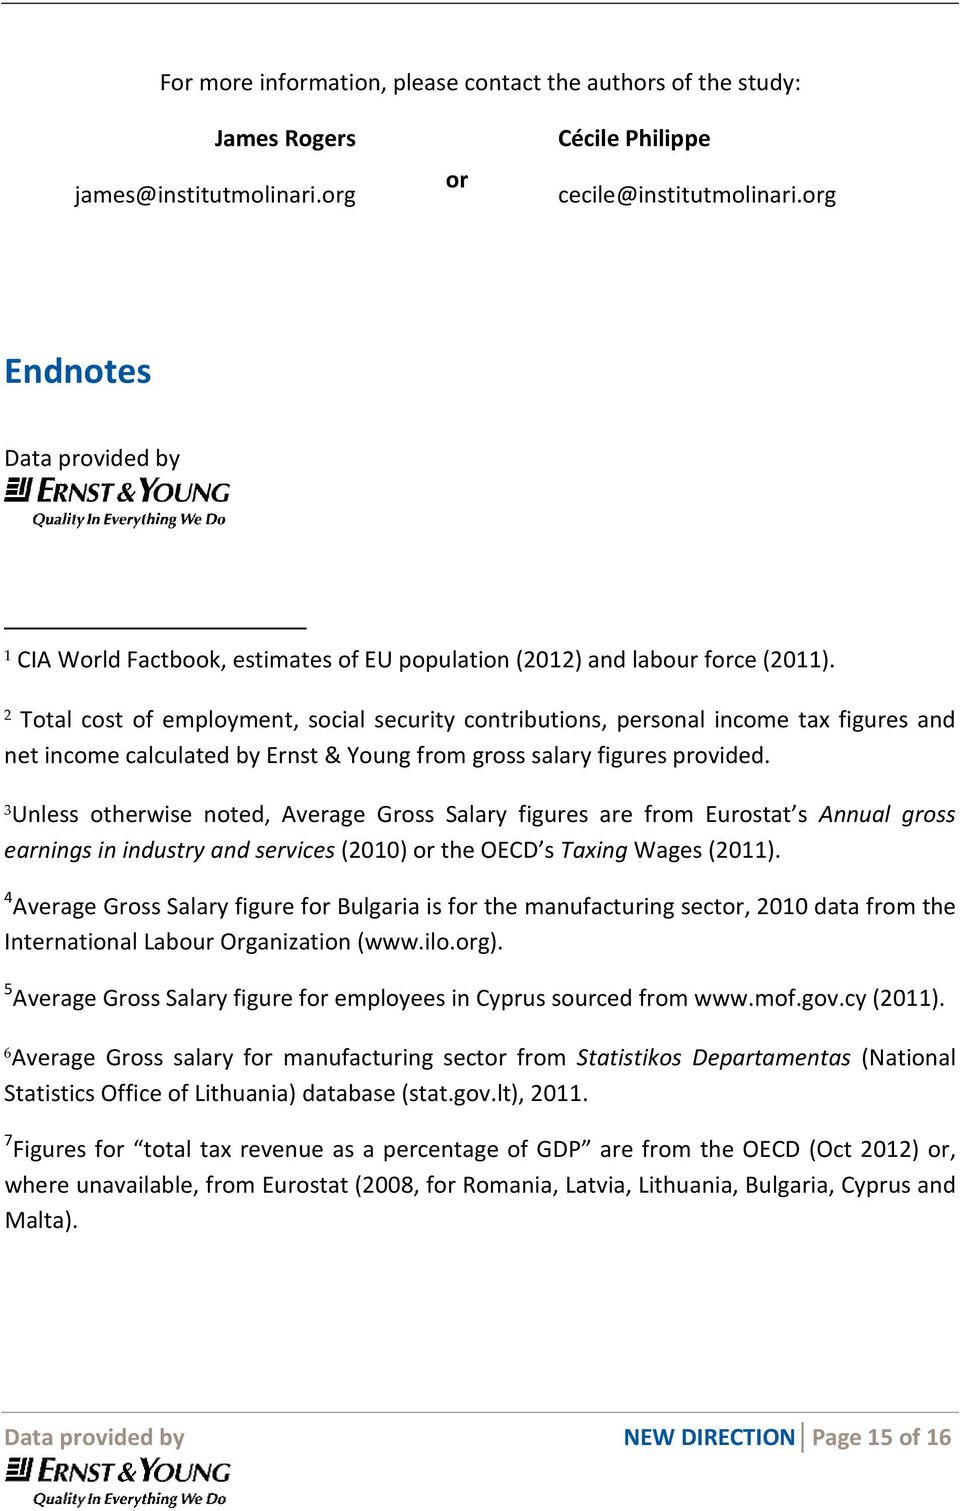 2 Total cost of employment, social security contributions, personal income tax figures and net income calculated by Ernst & Young from gross salary figures provided.